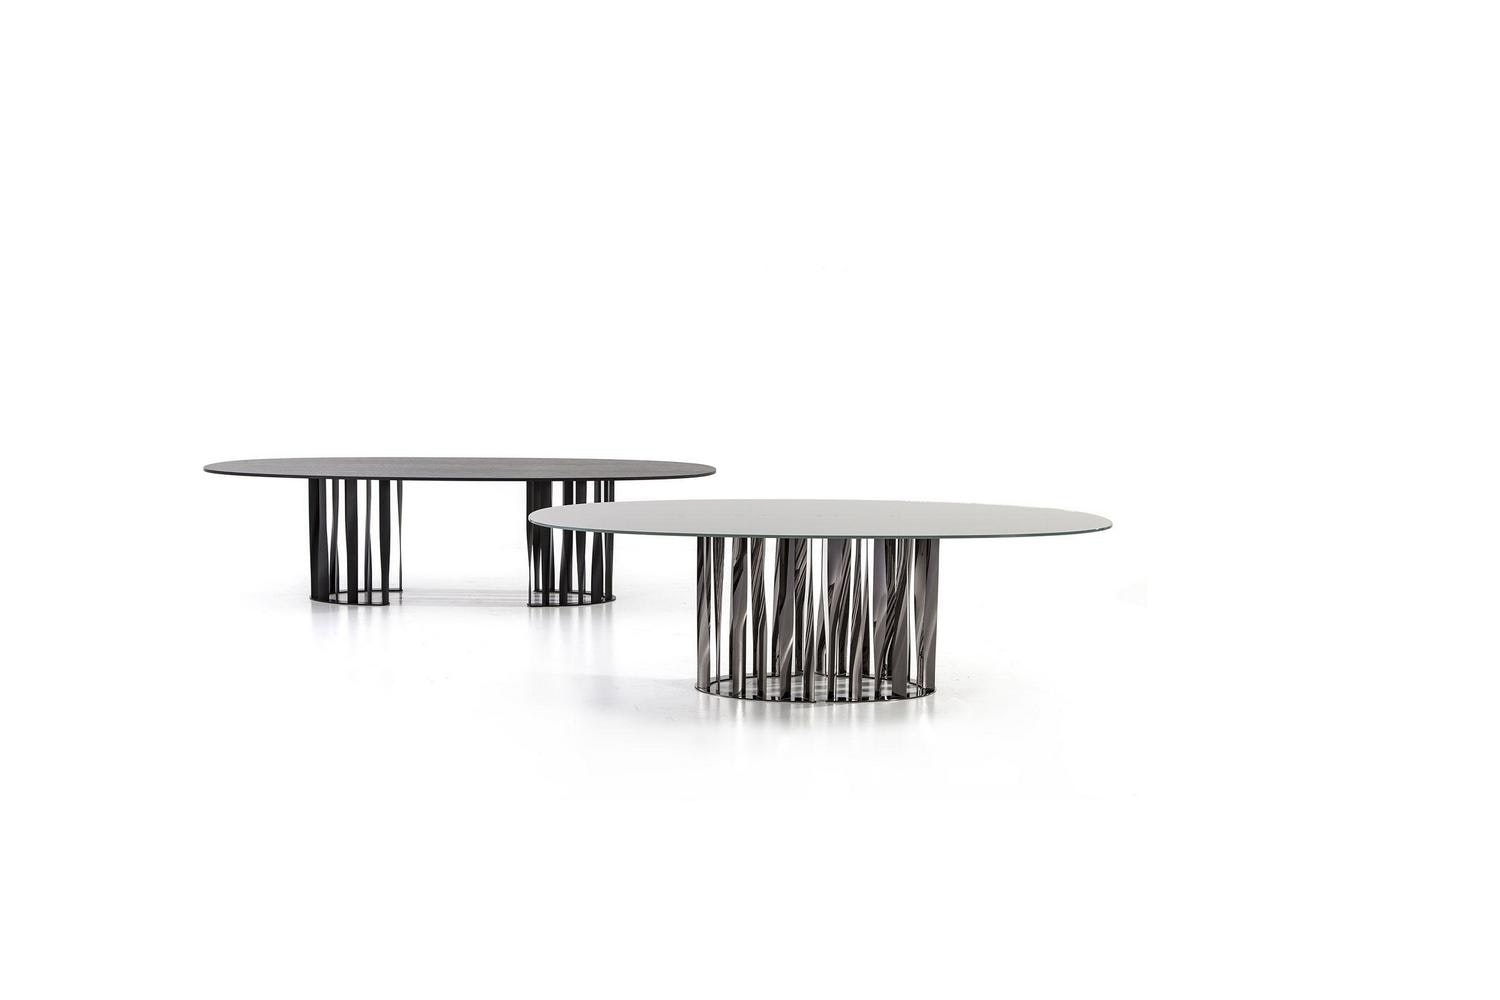 475 Boboli Table by Rodolfo Dordoni for Cassina